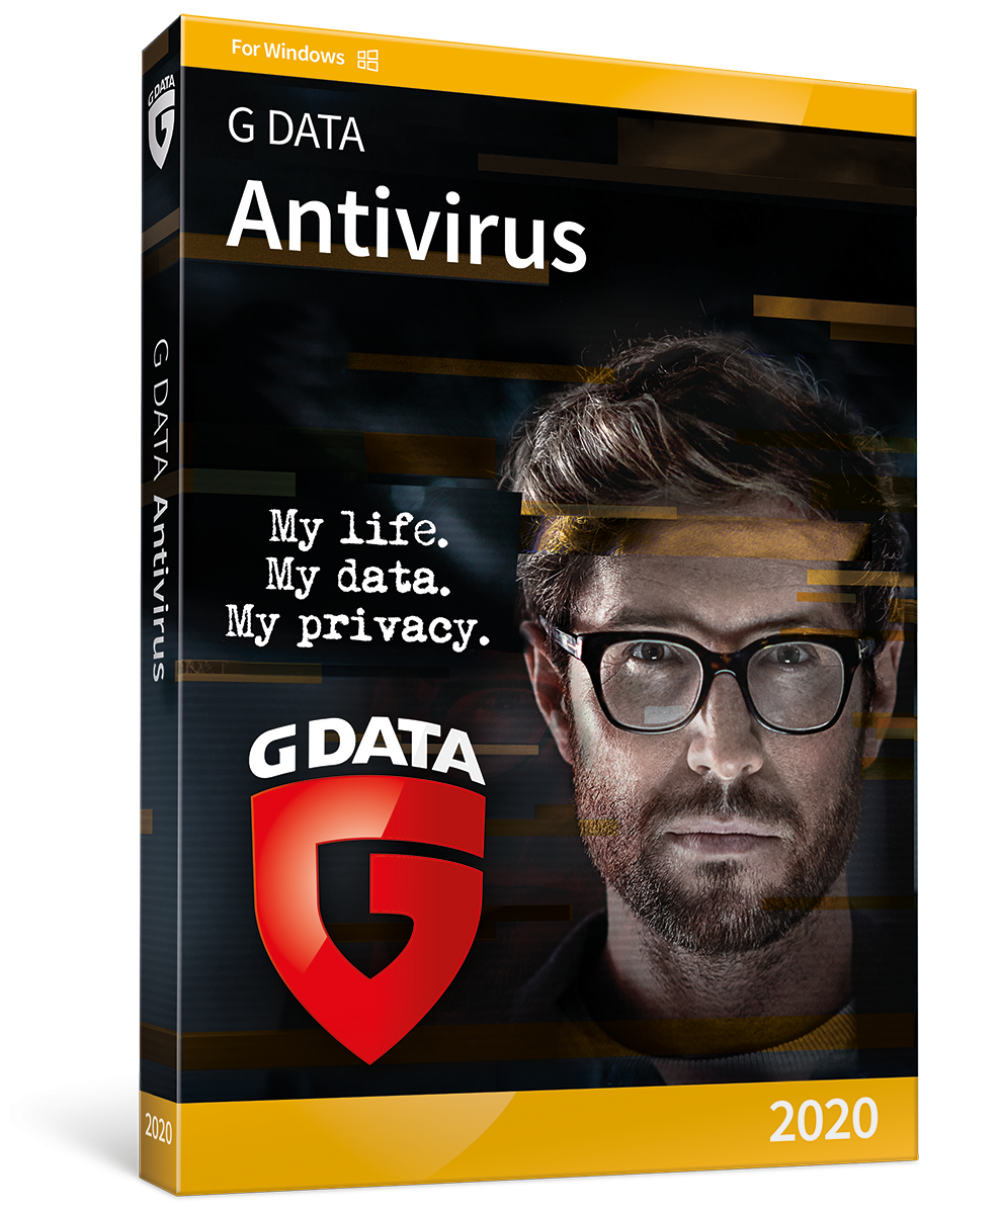 Antivirus G DATA 2020 pentru windows 12 luni 1 dispozitiv imagine